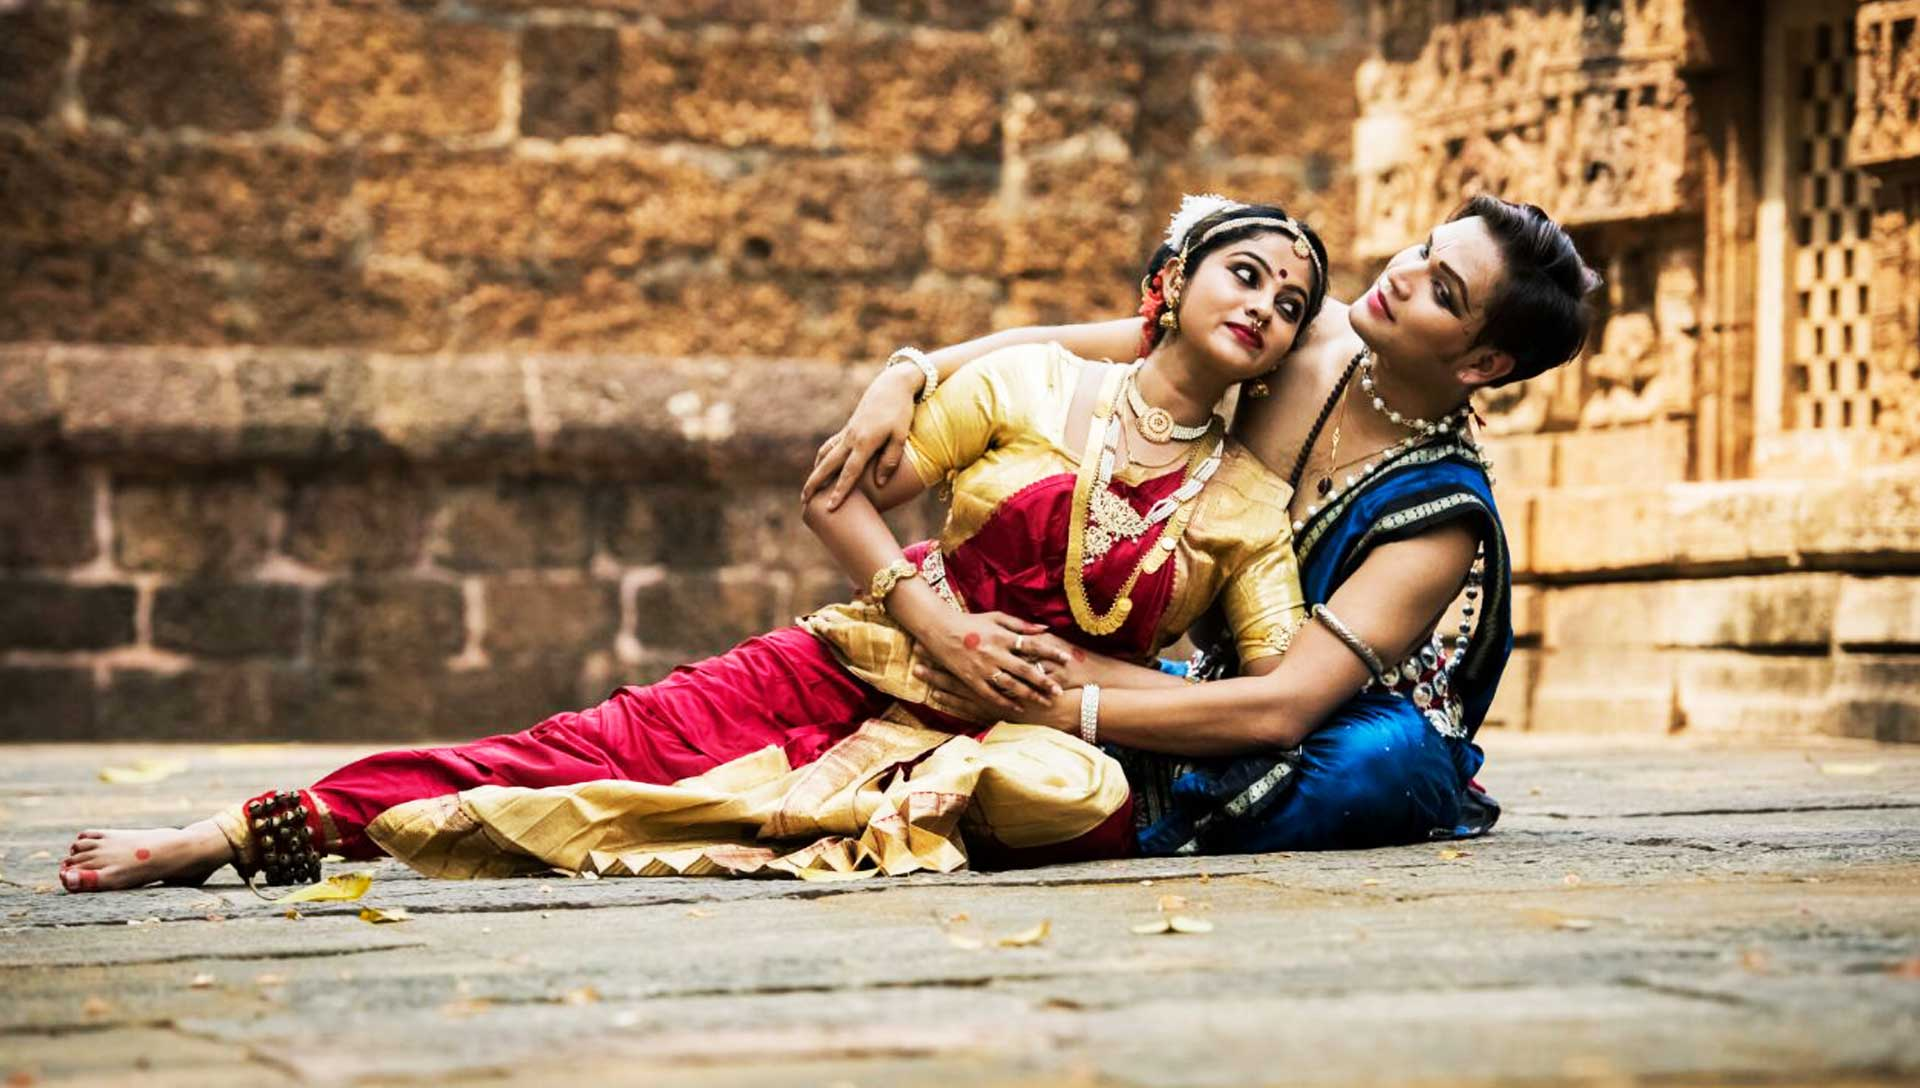 Saswat Joshi, Odisha's Aekalavya Dance Festival & Saswat Joshi To Spell The Magic In Singapore Next Week & We're Excited To See The Response!